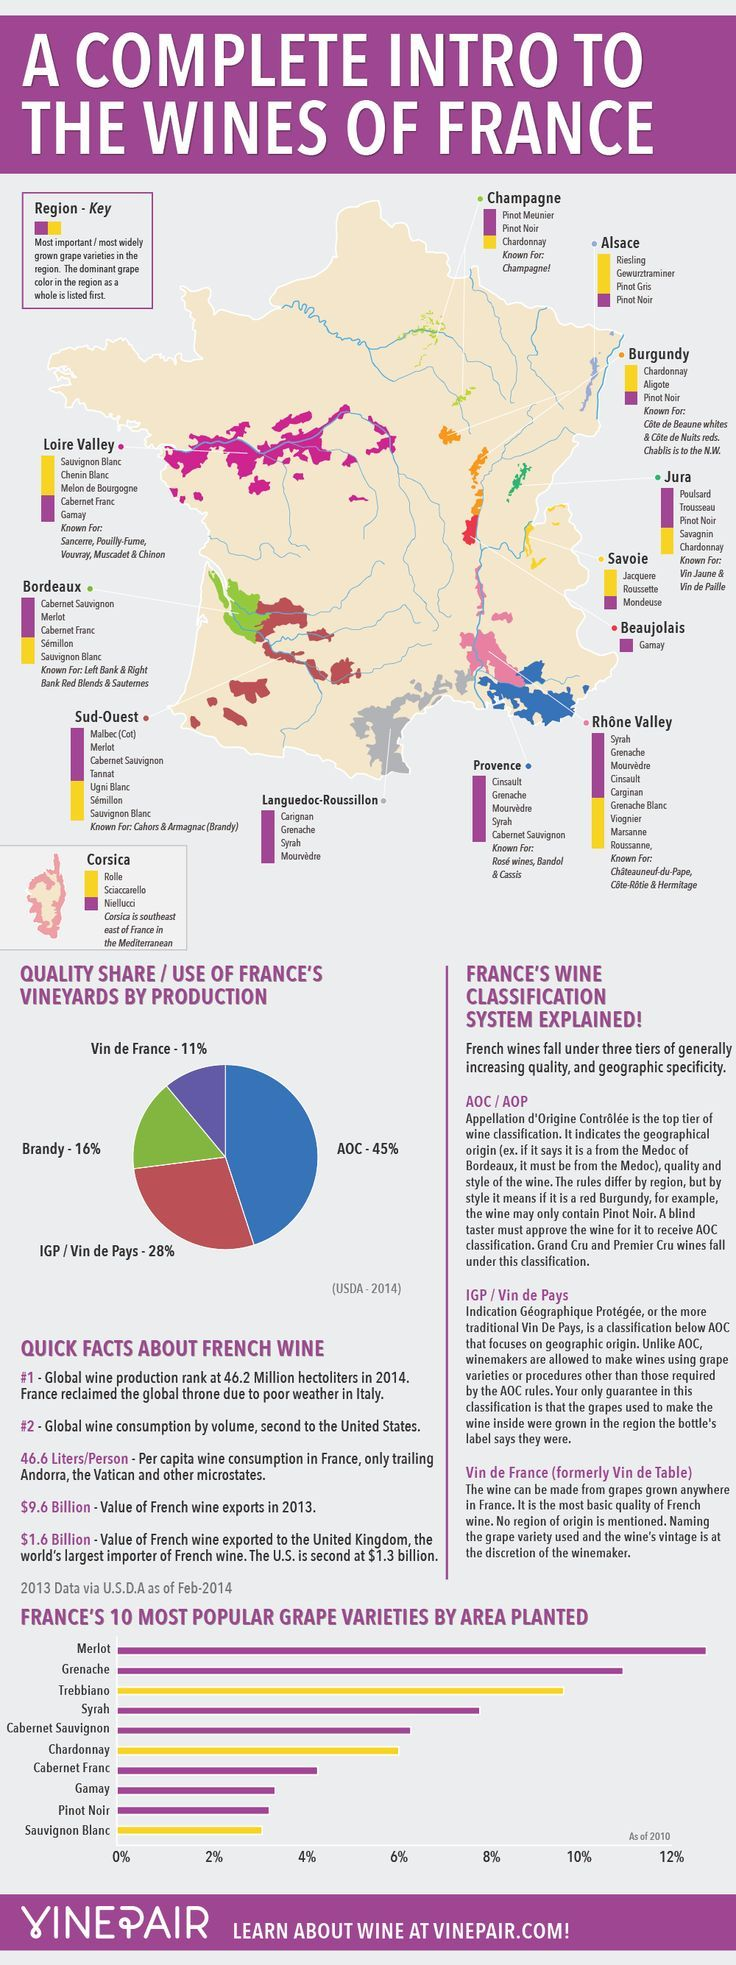 Our complete intro to France features a helpful map and infographic to guide you through the country's diverse wines. Learn about French wine now!